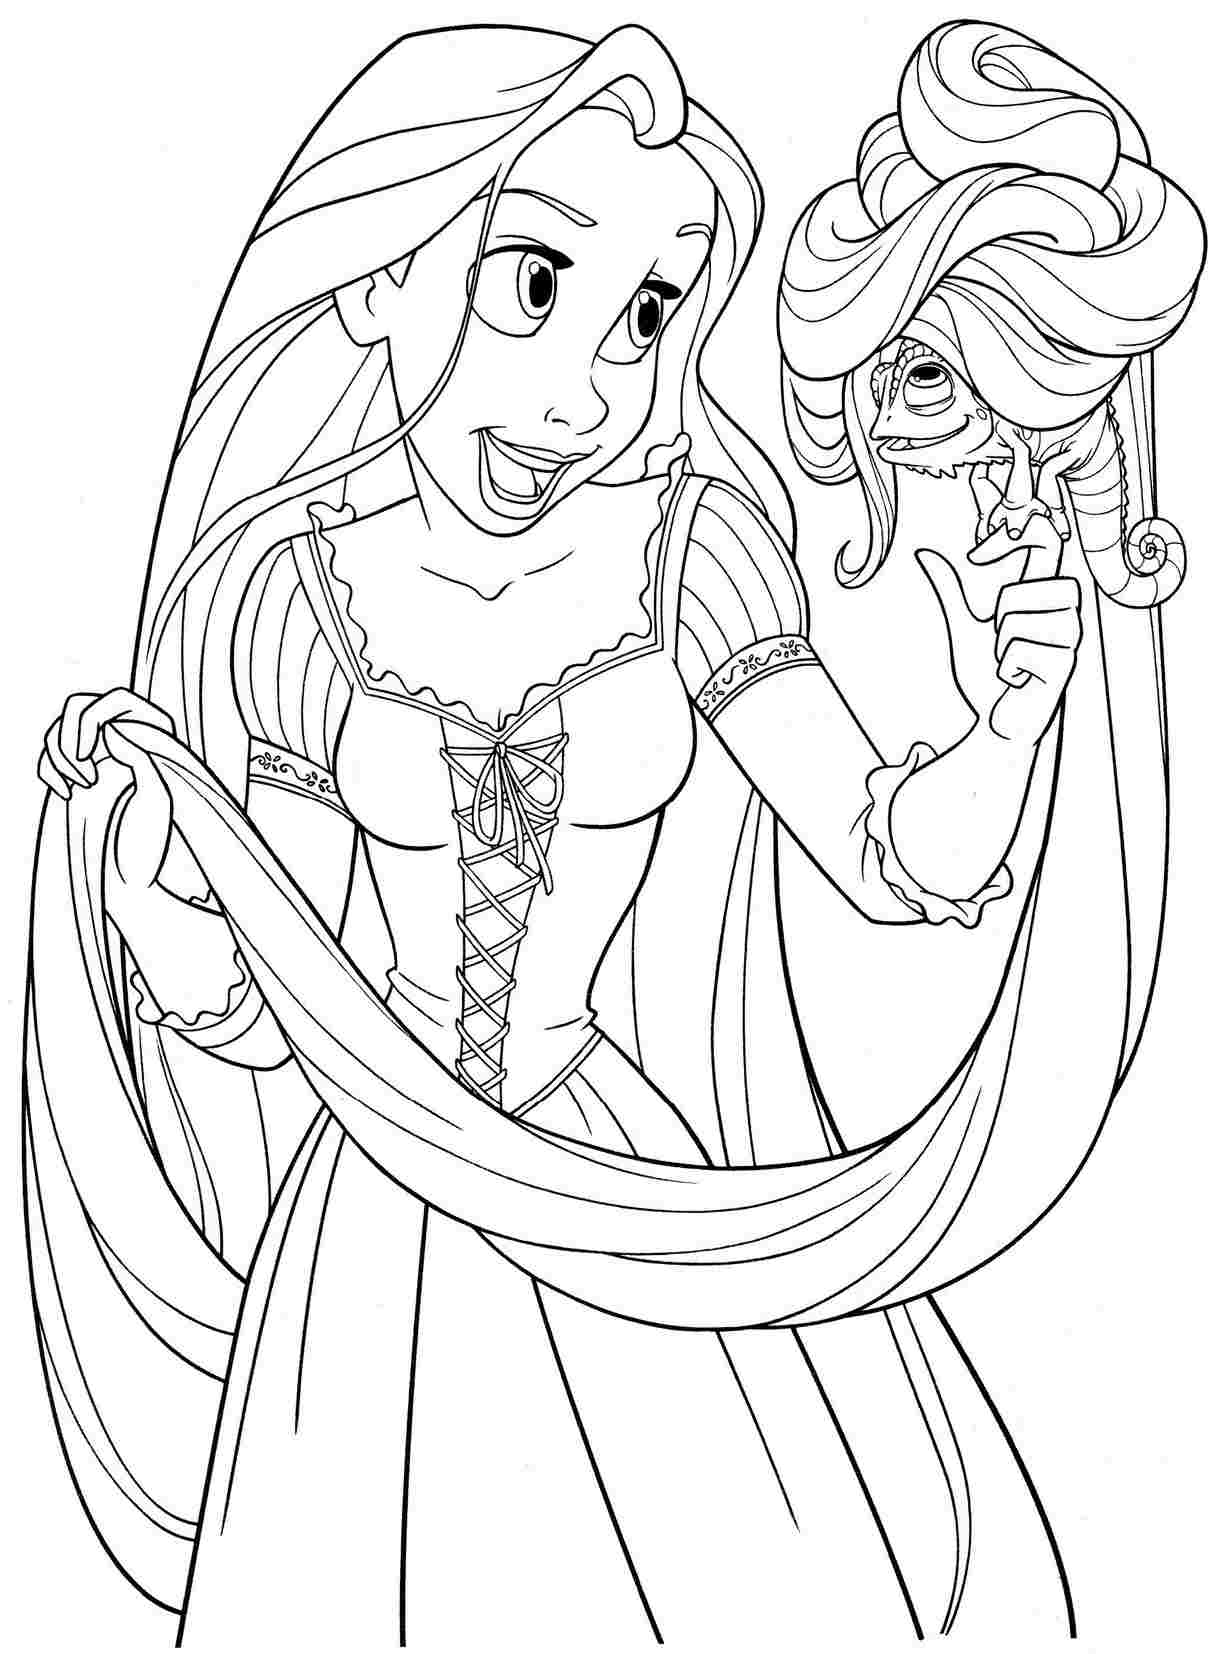 Rapunzel Coloring Pages To Download And Print For Free